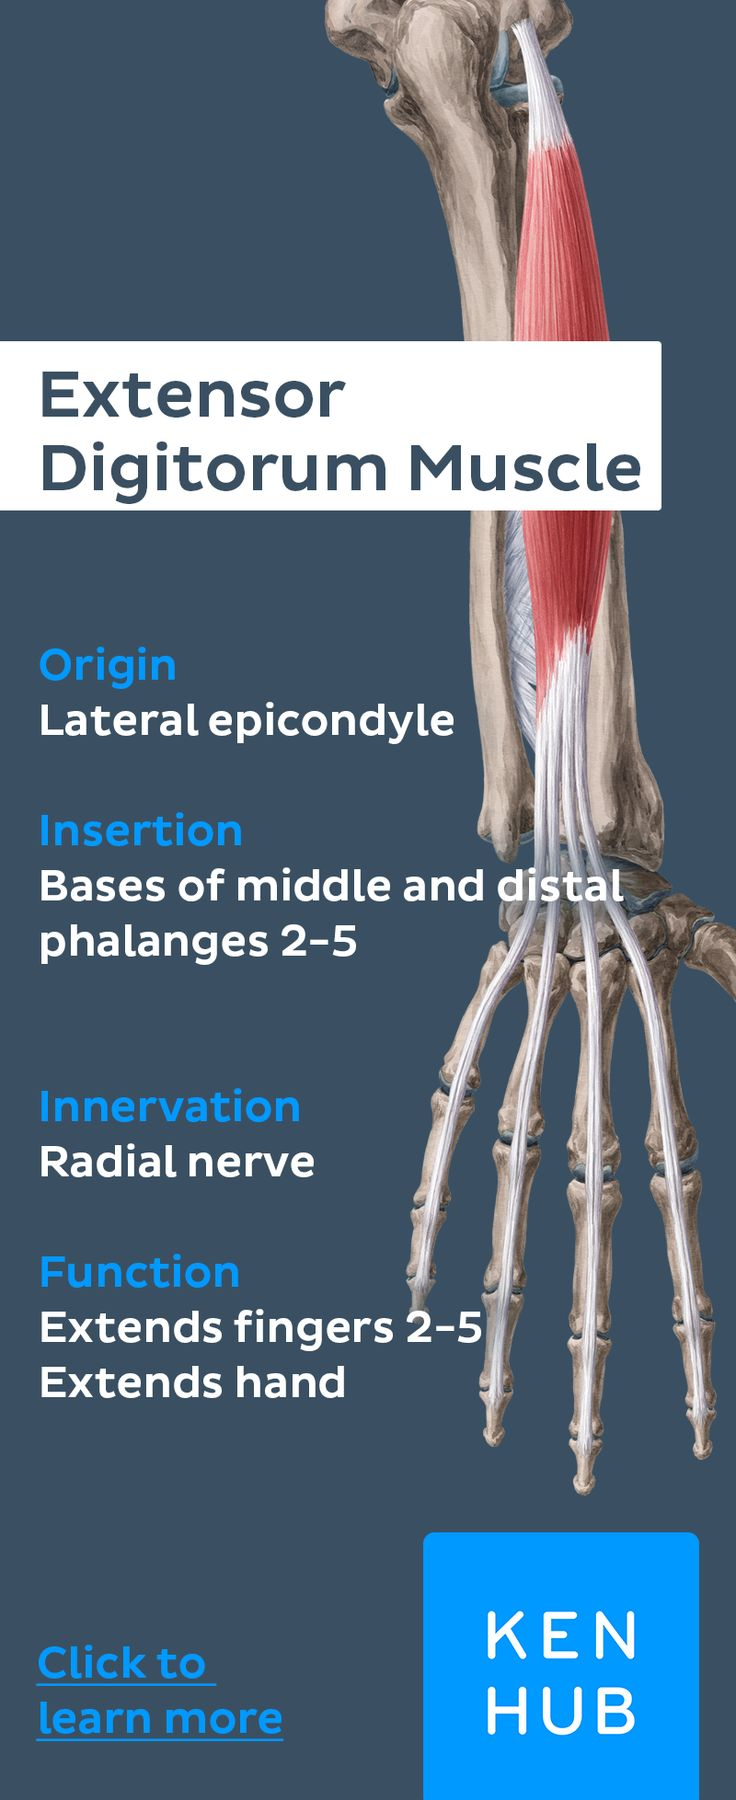 The extensor digitorum is one of the superficial extensor #muscles of the forearm. Read more about the #anatomy of these muscles on Kenhub!